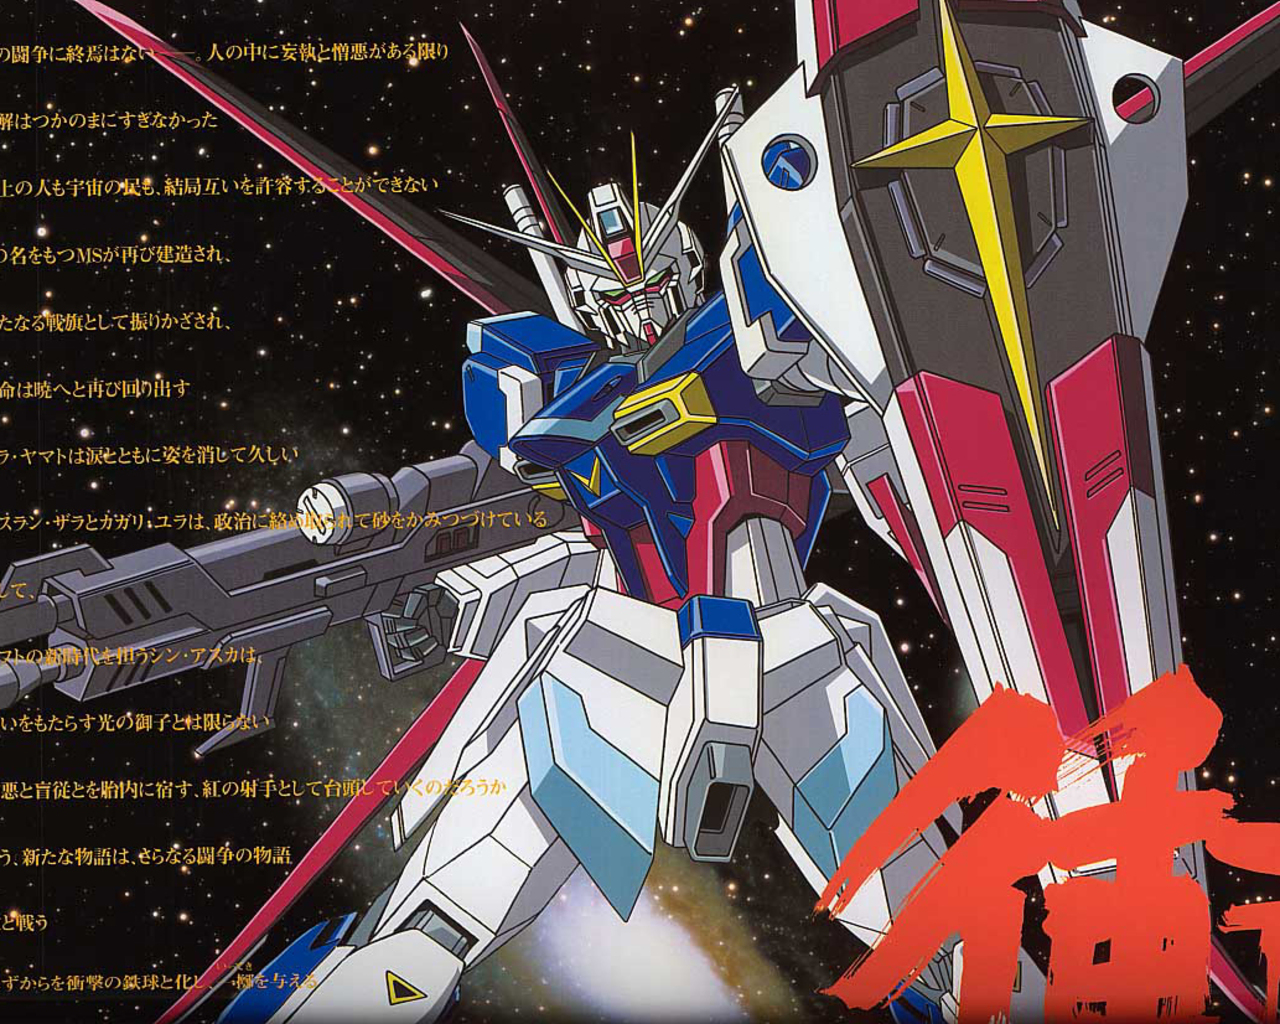 mobile suit gundam anime anime shrines hd wallpapers Car Pictures 1280x1024